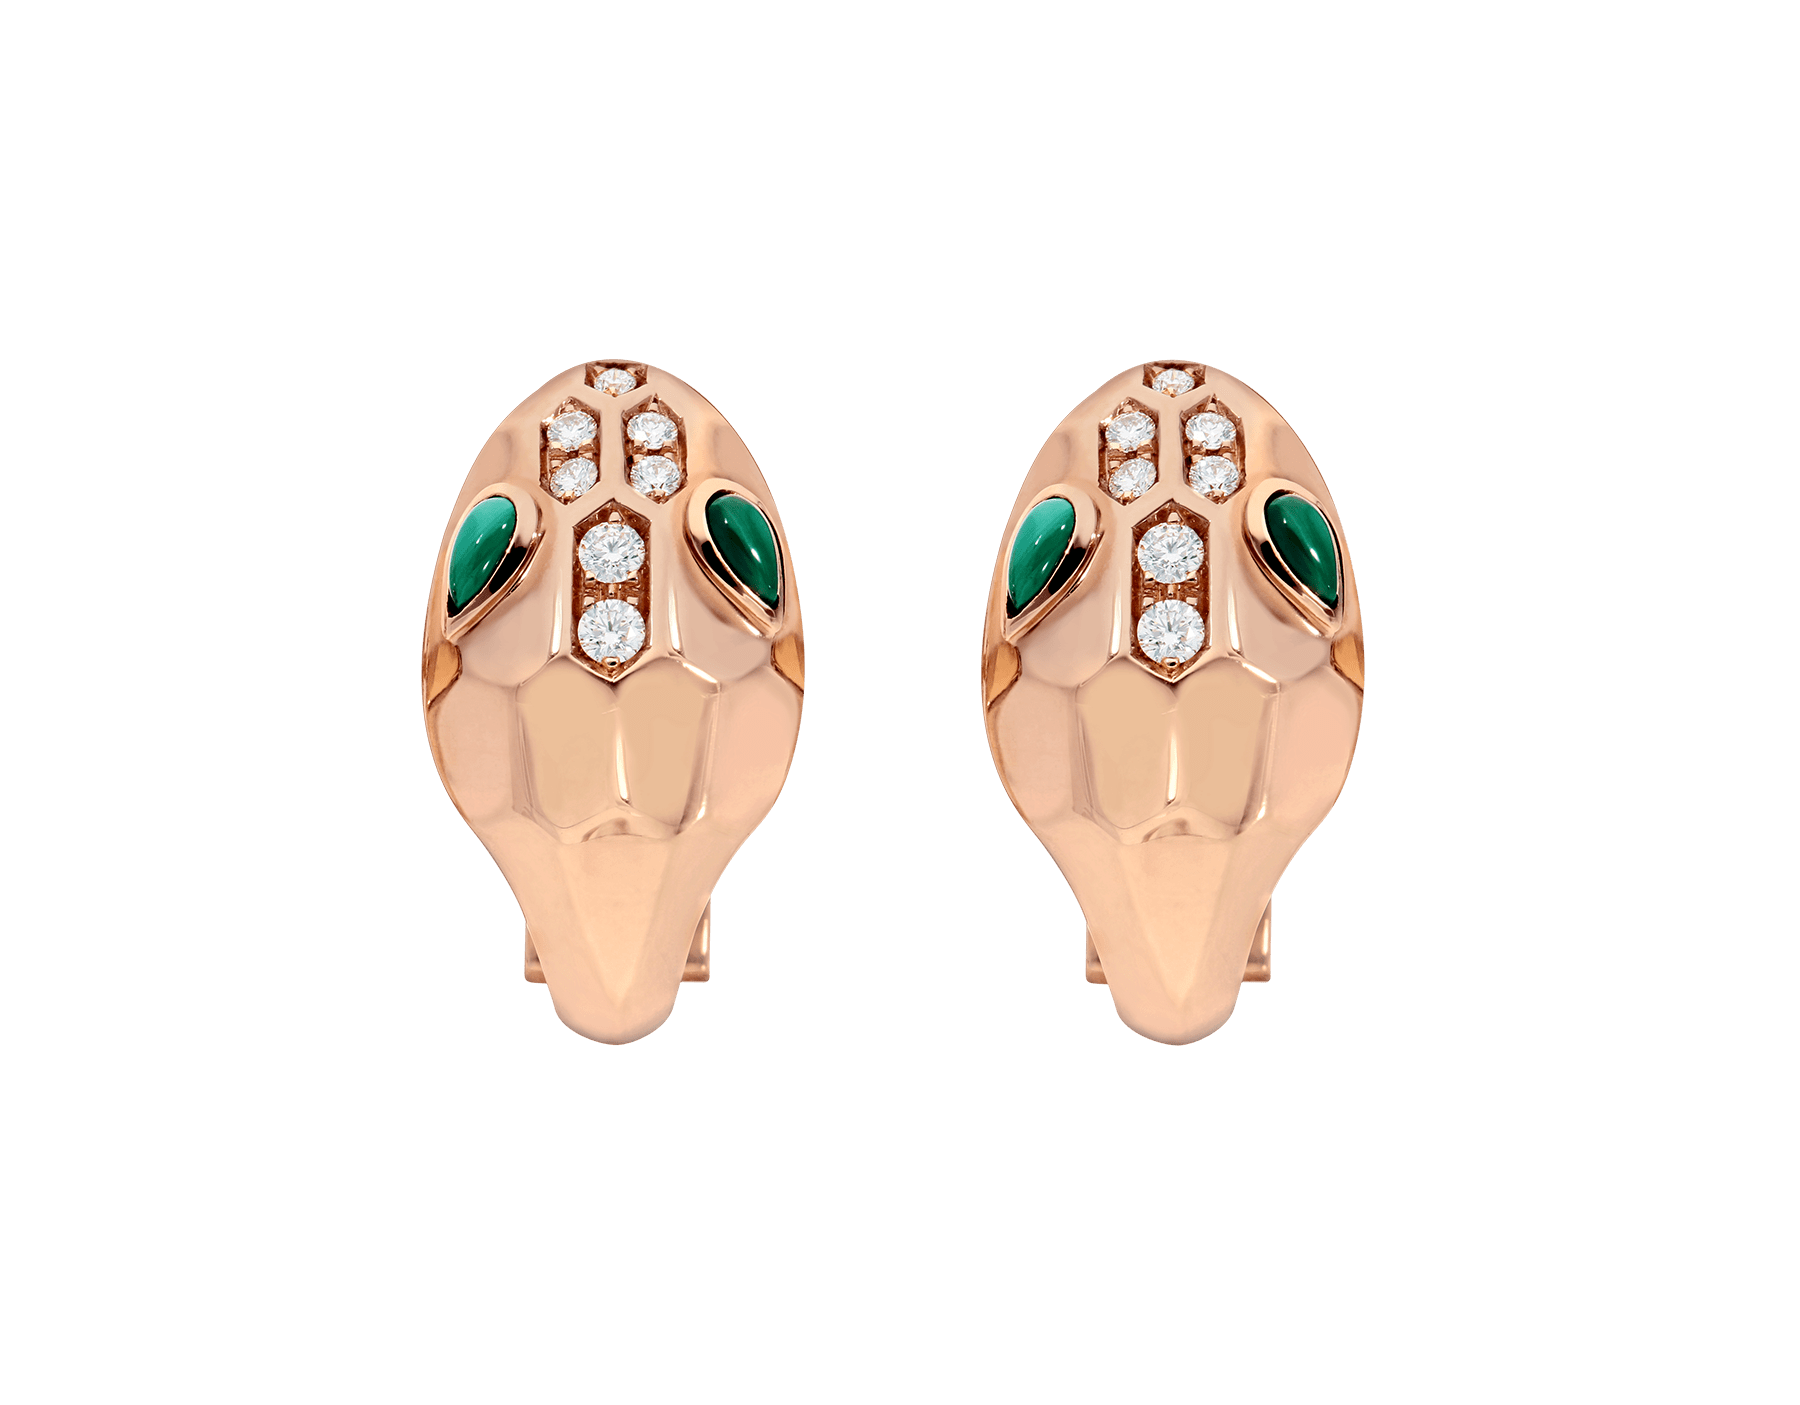 Serpenti earrings in 18 kt rose gold, set with malachite eyes and demi pavé diamonds. 352701 image 1